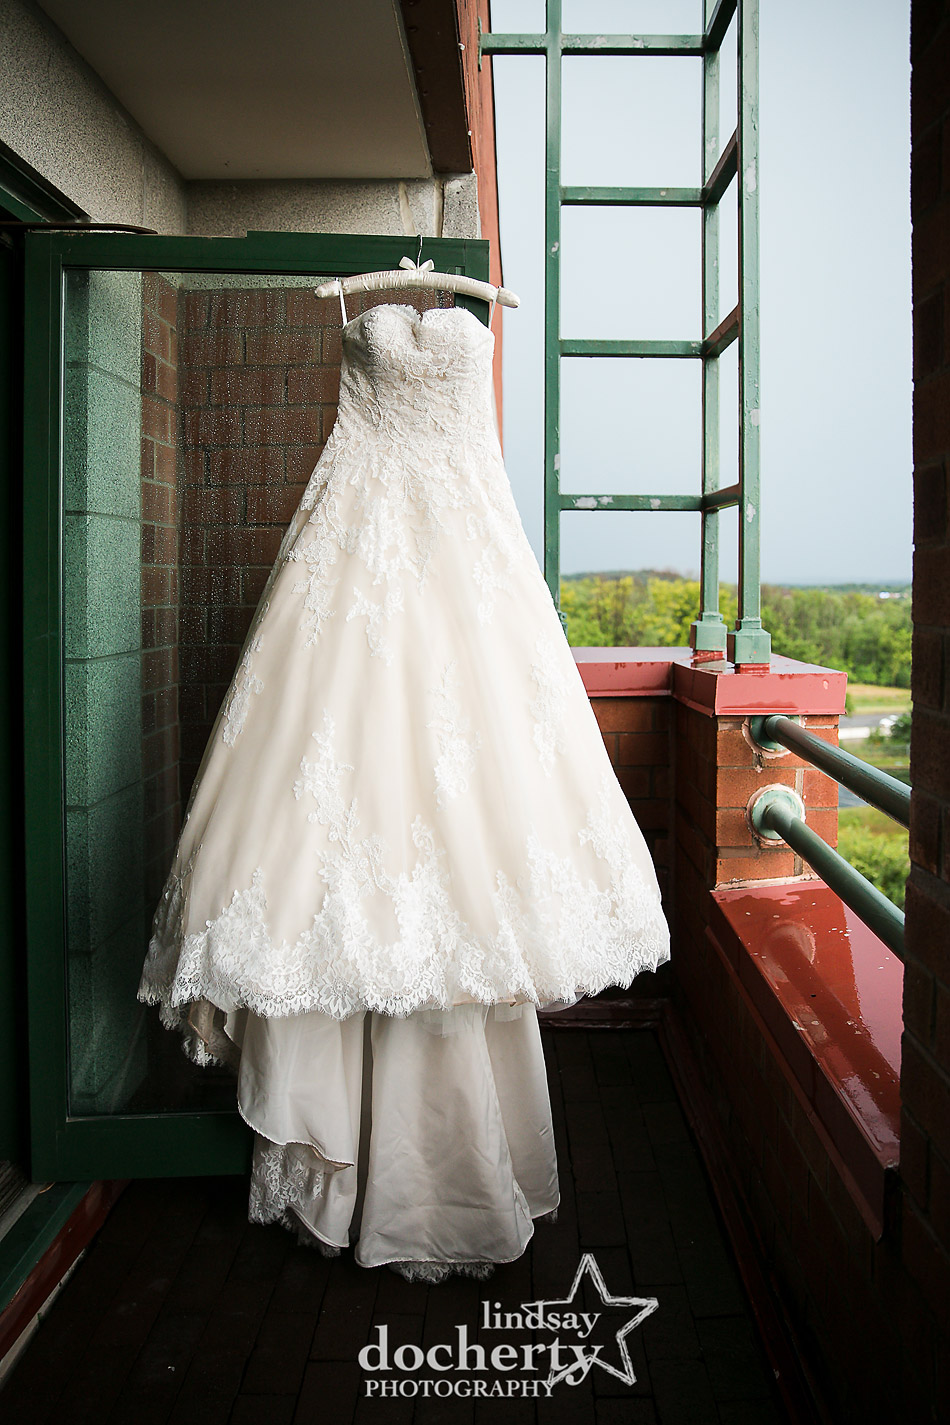 wedding dress hanging up ooutside on rainy wedding day